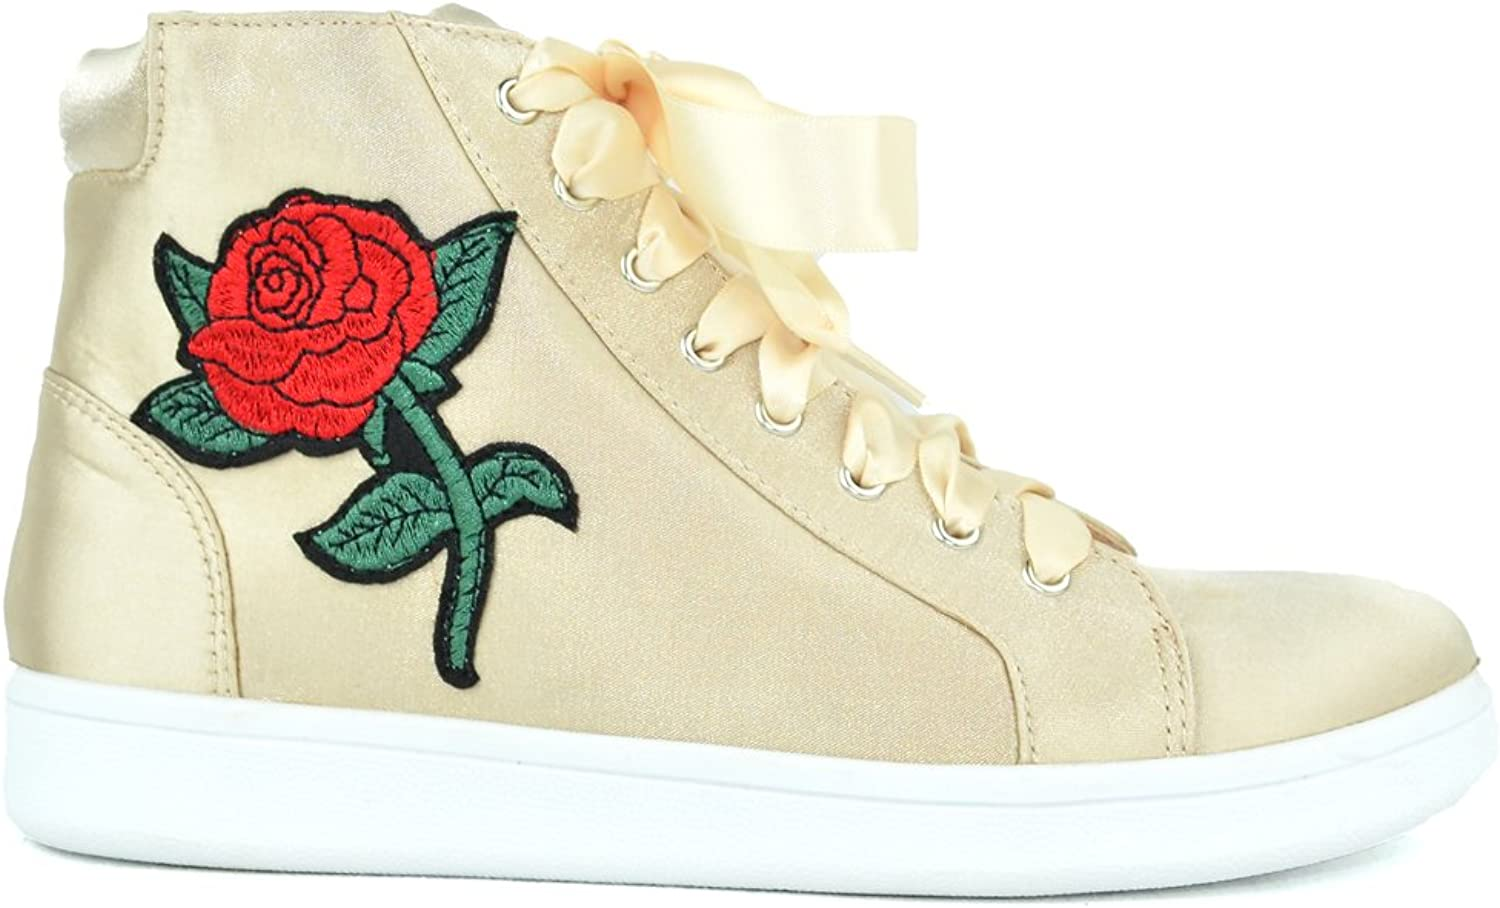 Chase & Chloe Celine-5 High Top Lace-up Women Fashion Sneaker with Embroidery Design